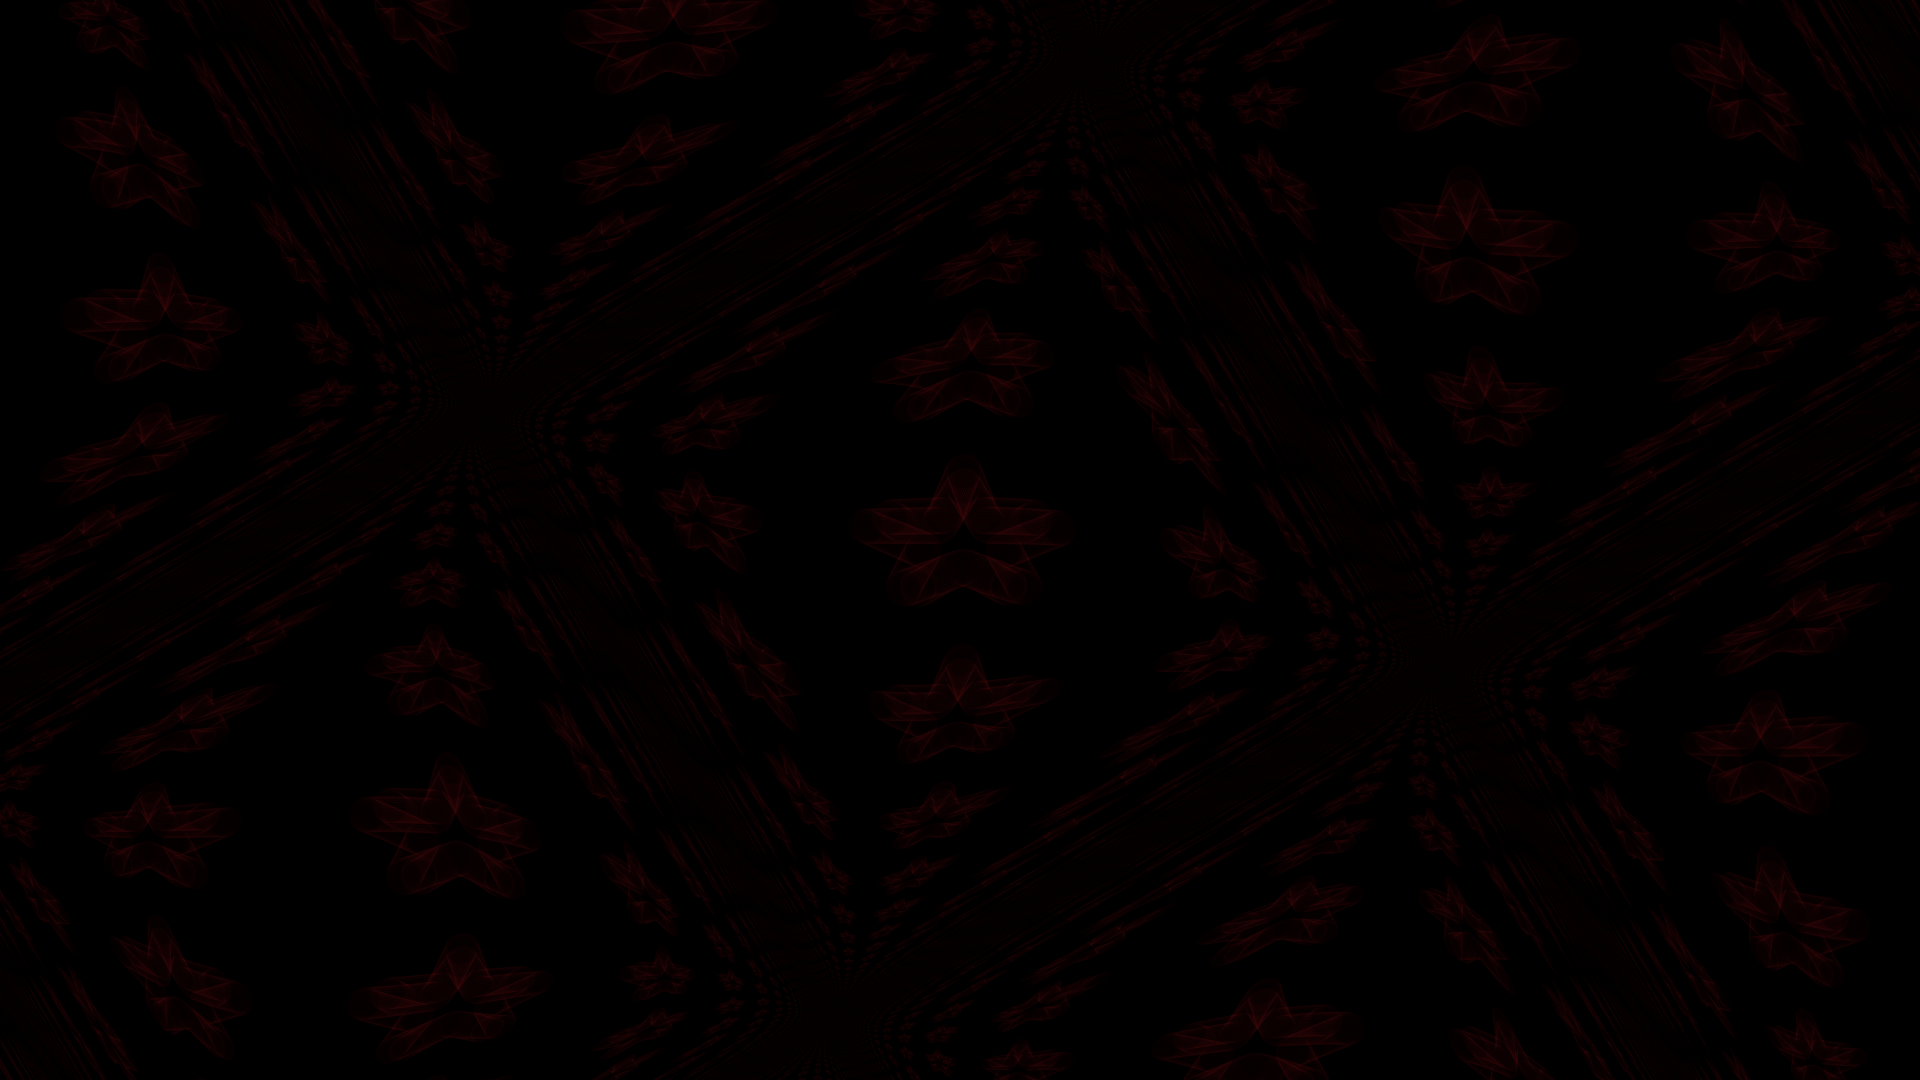 black and red wallpaper 1920x1080 by eliittihemuli on